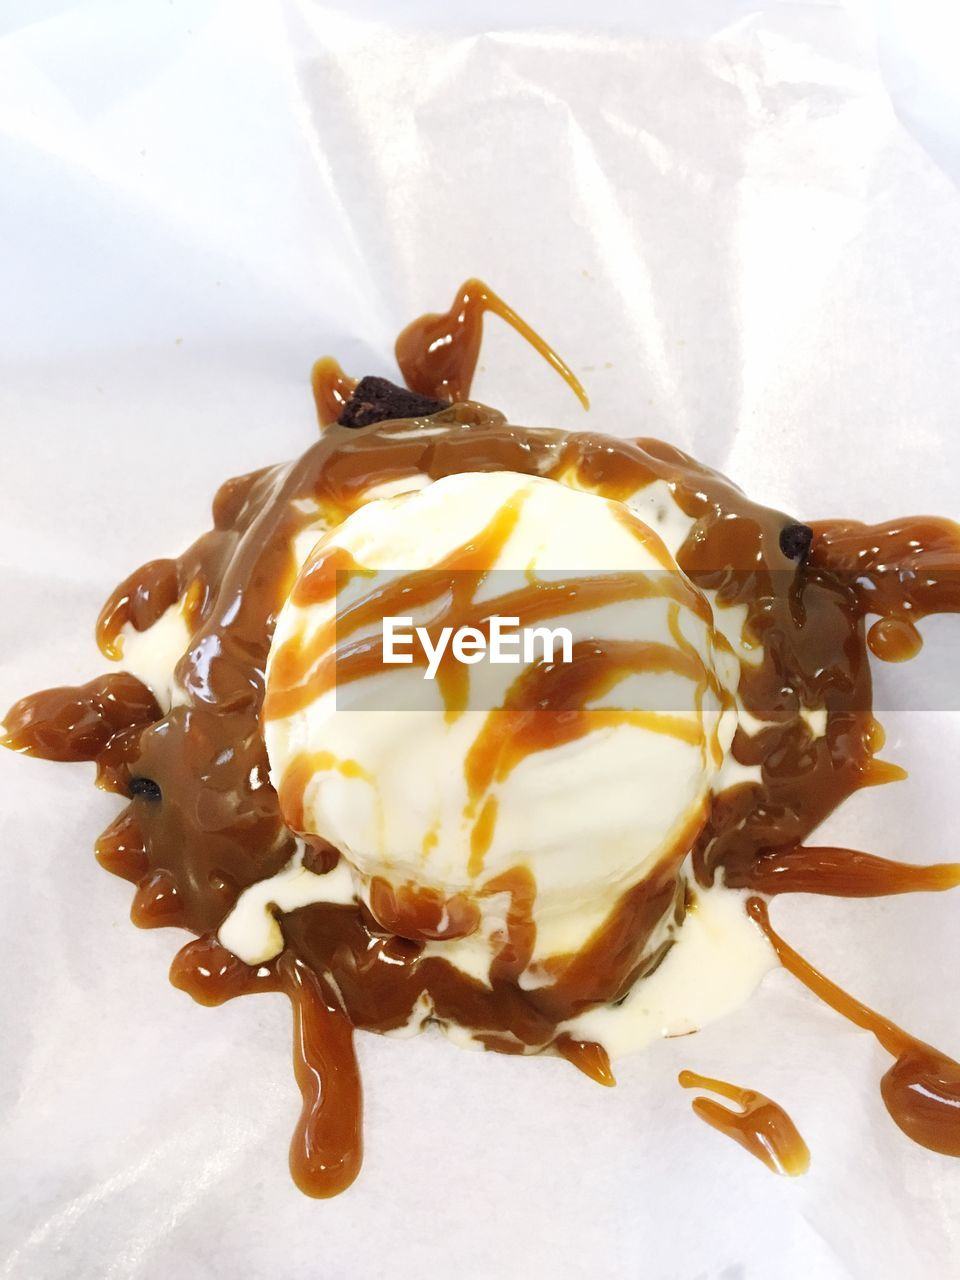 sweet food, food and drink, chocolate, indulgence, dessert, chocolate sauce, food, no people, ice cream, temptation, unhealthy eating, close-up, frozen food, indoors, freshness, ice cream sundae, molten, ready-to-eat, day